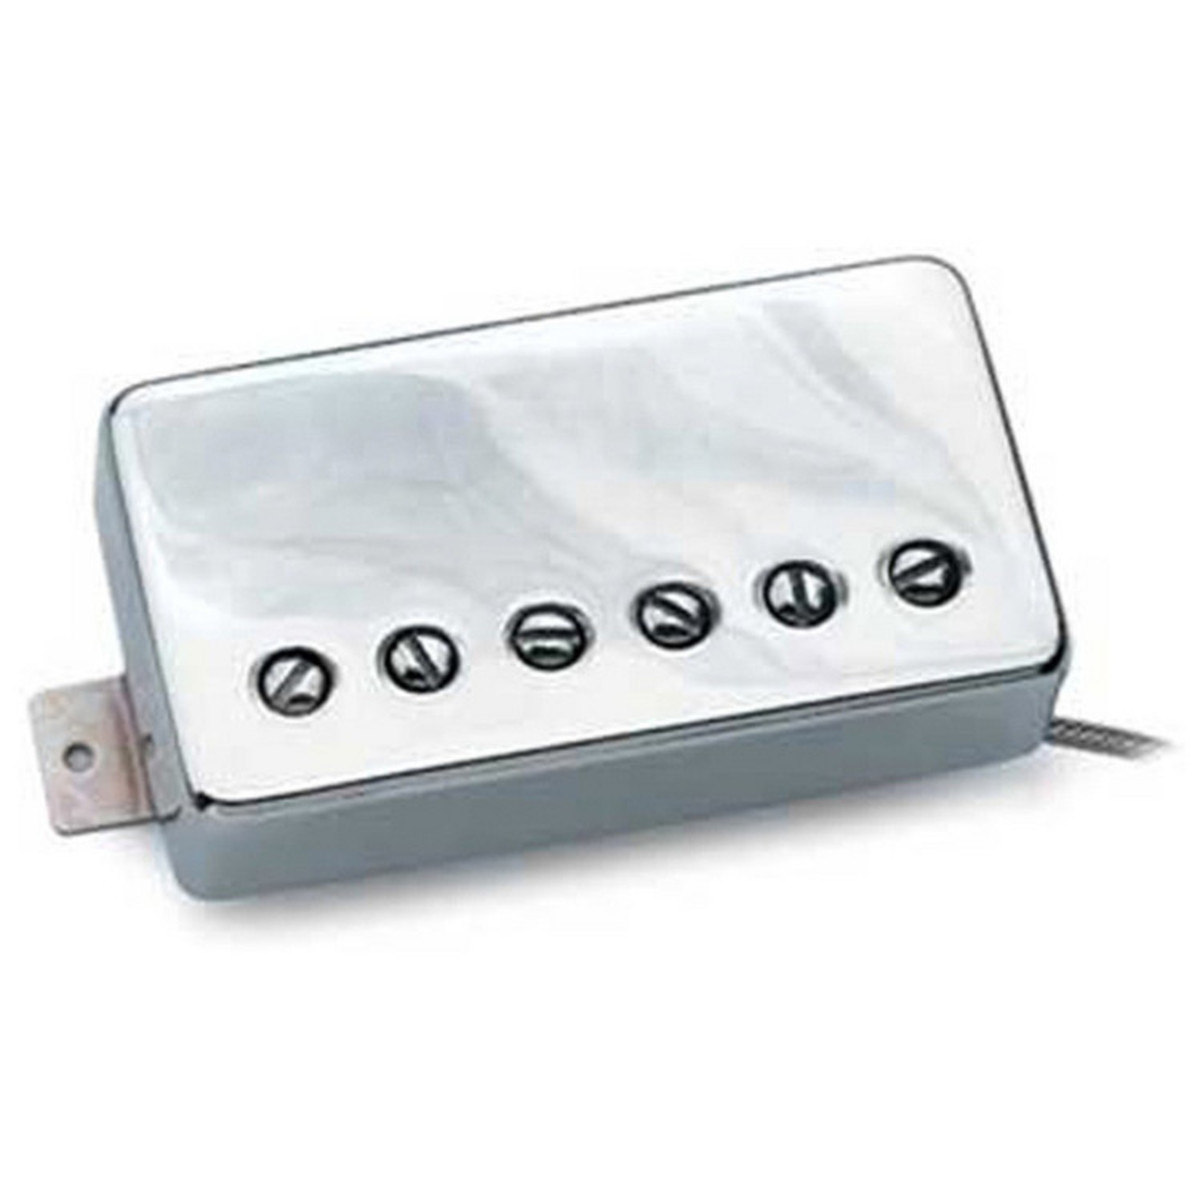 Seymour Duncan Sh 1 59 Model Bridge Pickup Nickel